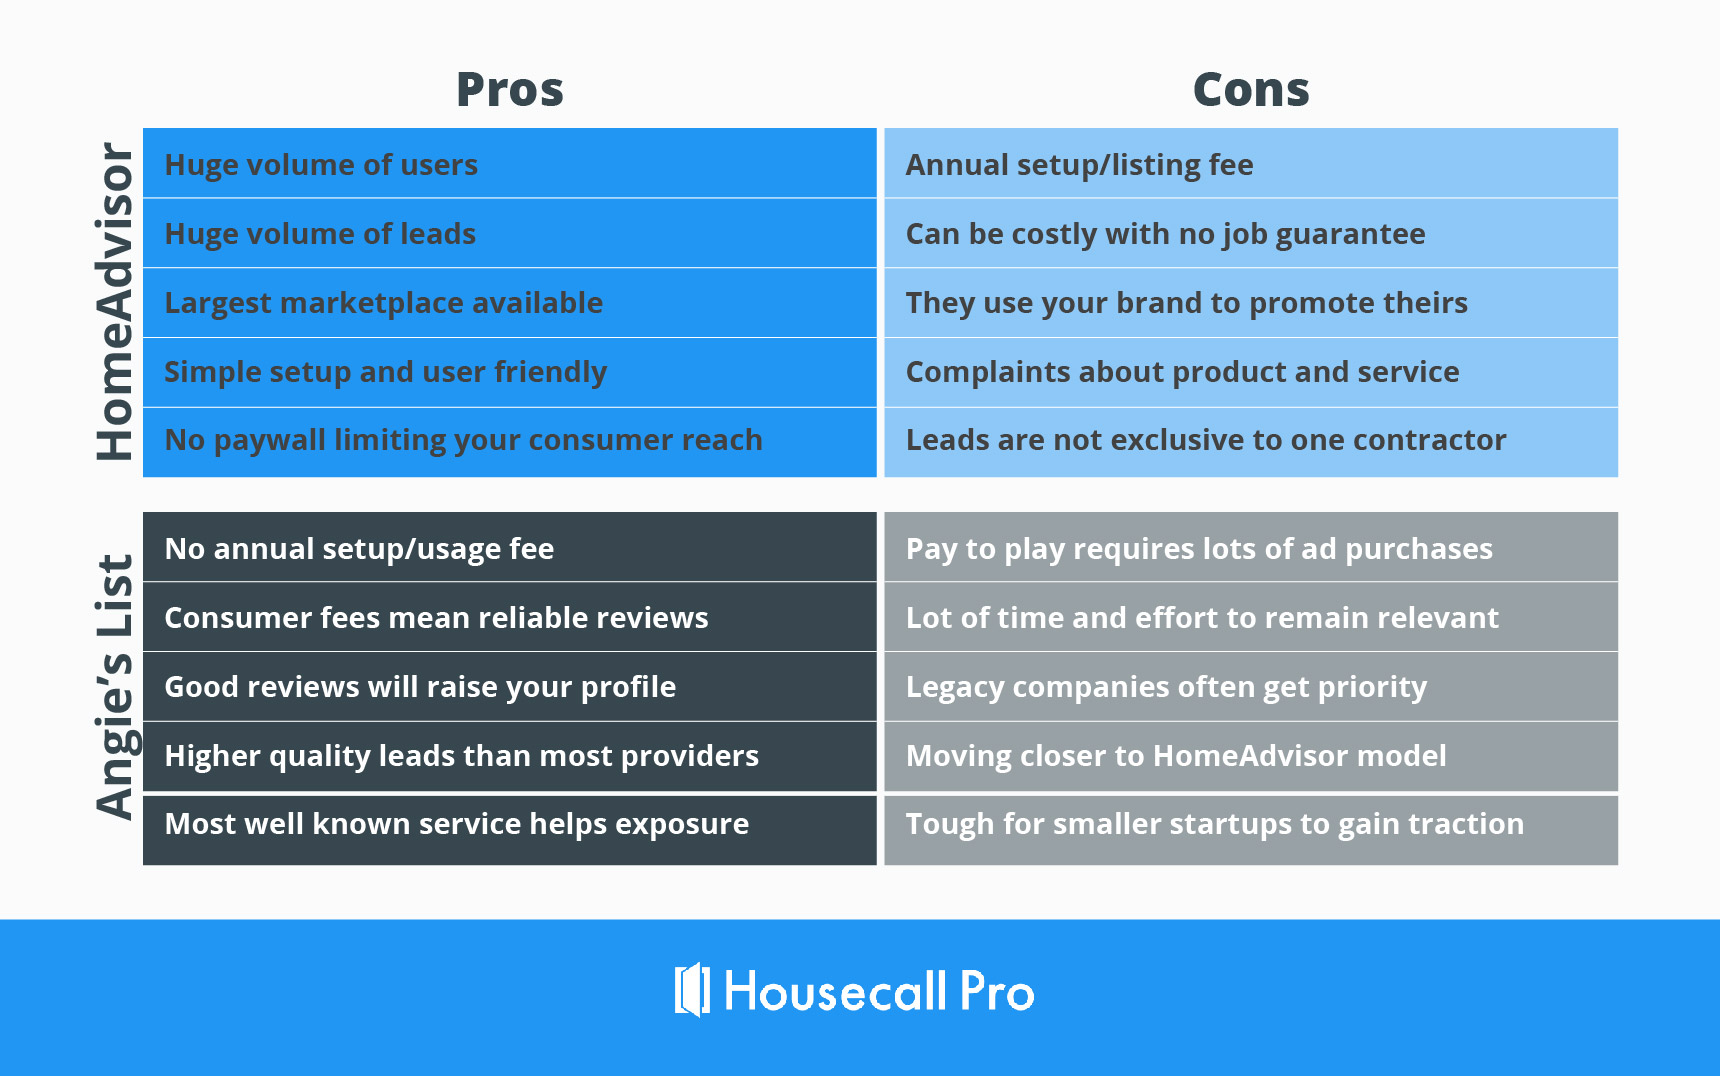 angie's list vs. homeadvisor pros and cons